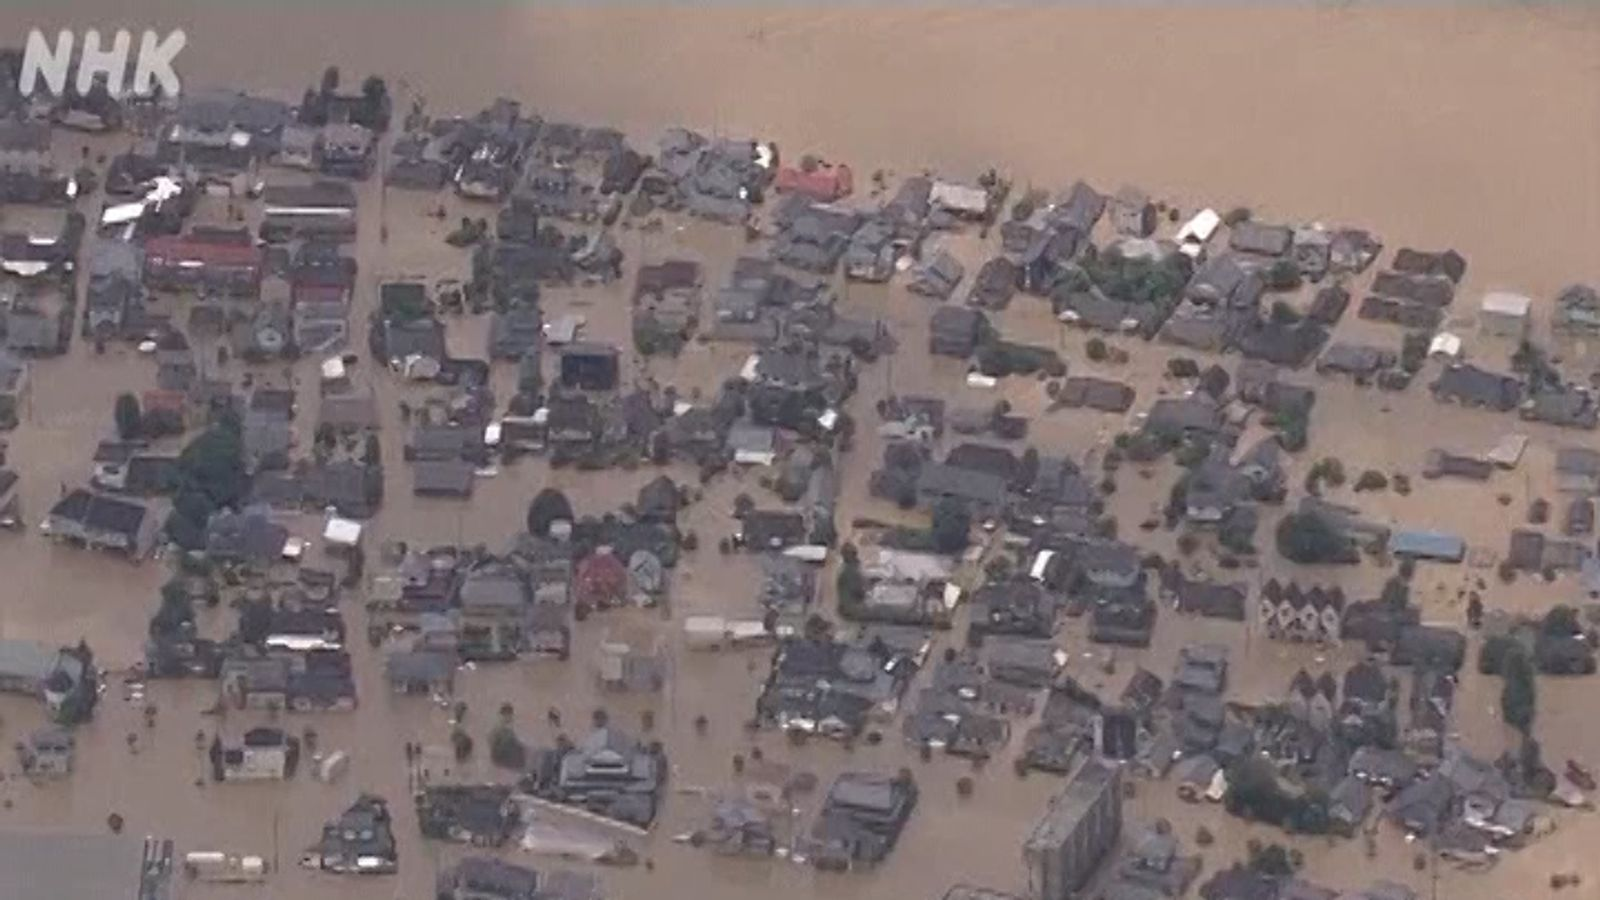 Flooding and mudslides in Southern Japan | World News | Sky News